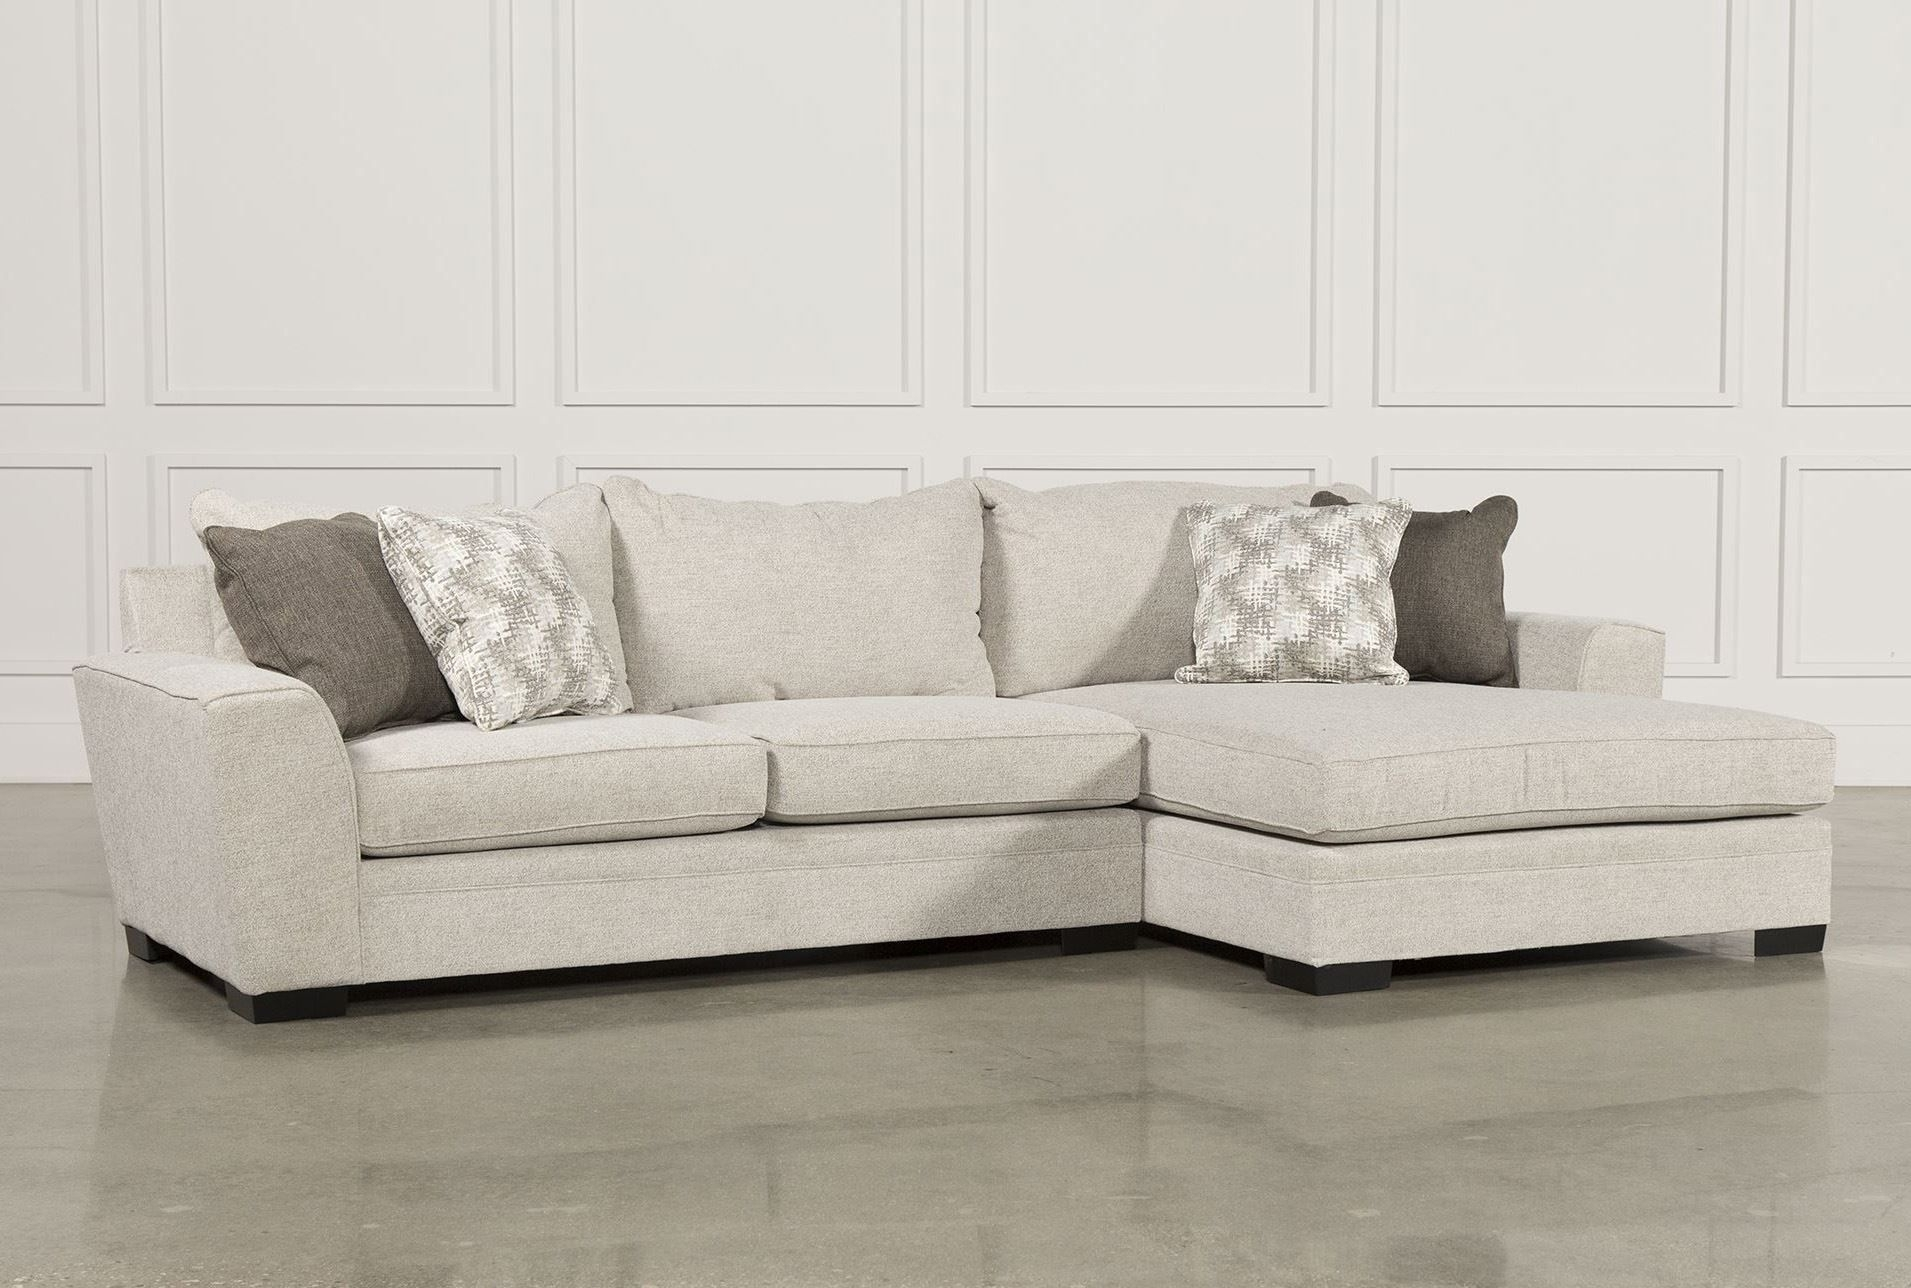 Delano 2 Piece Sectional W/raf Oversized Chaise | New Home Pertaining To Burton Leather 3 Piece Sectionals (Image 6 of 25)